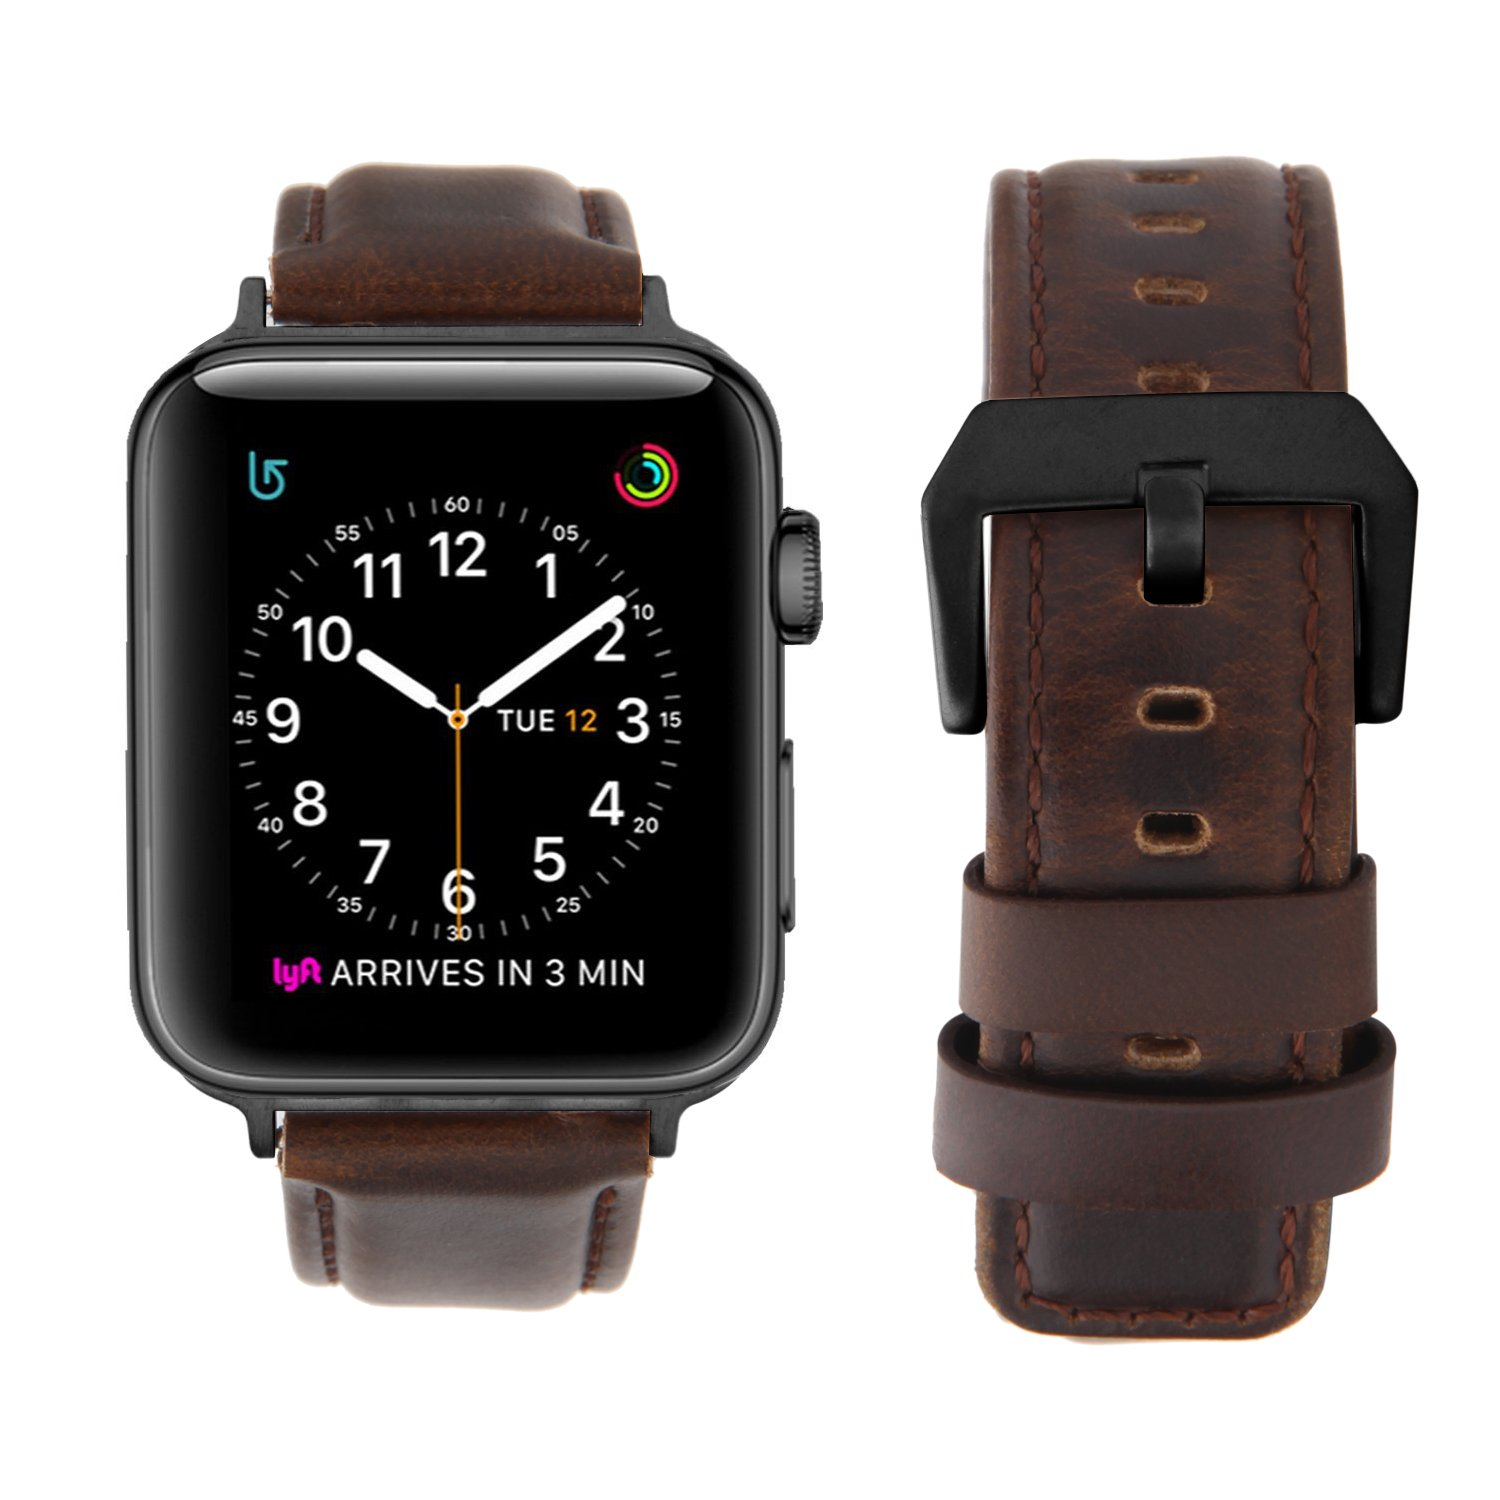 Youkex For Apple Watch Band 42mm Genuine Leather Strap Replacement Series 2 Black Wristband With Stainless Steel